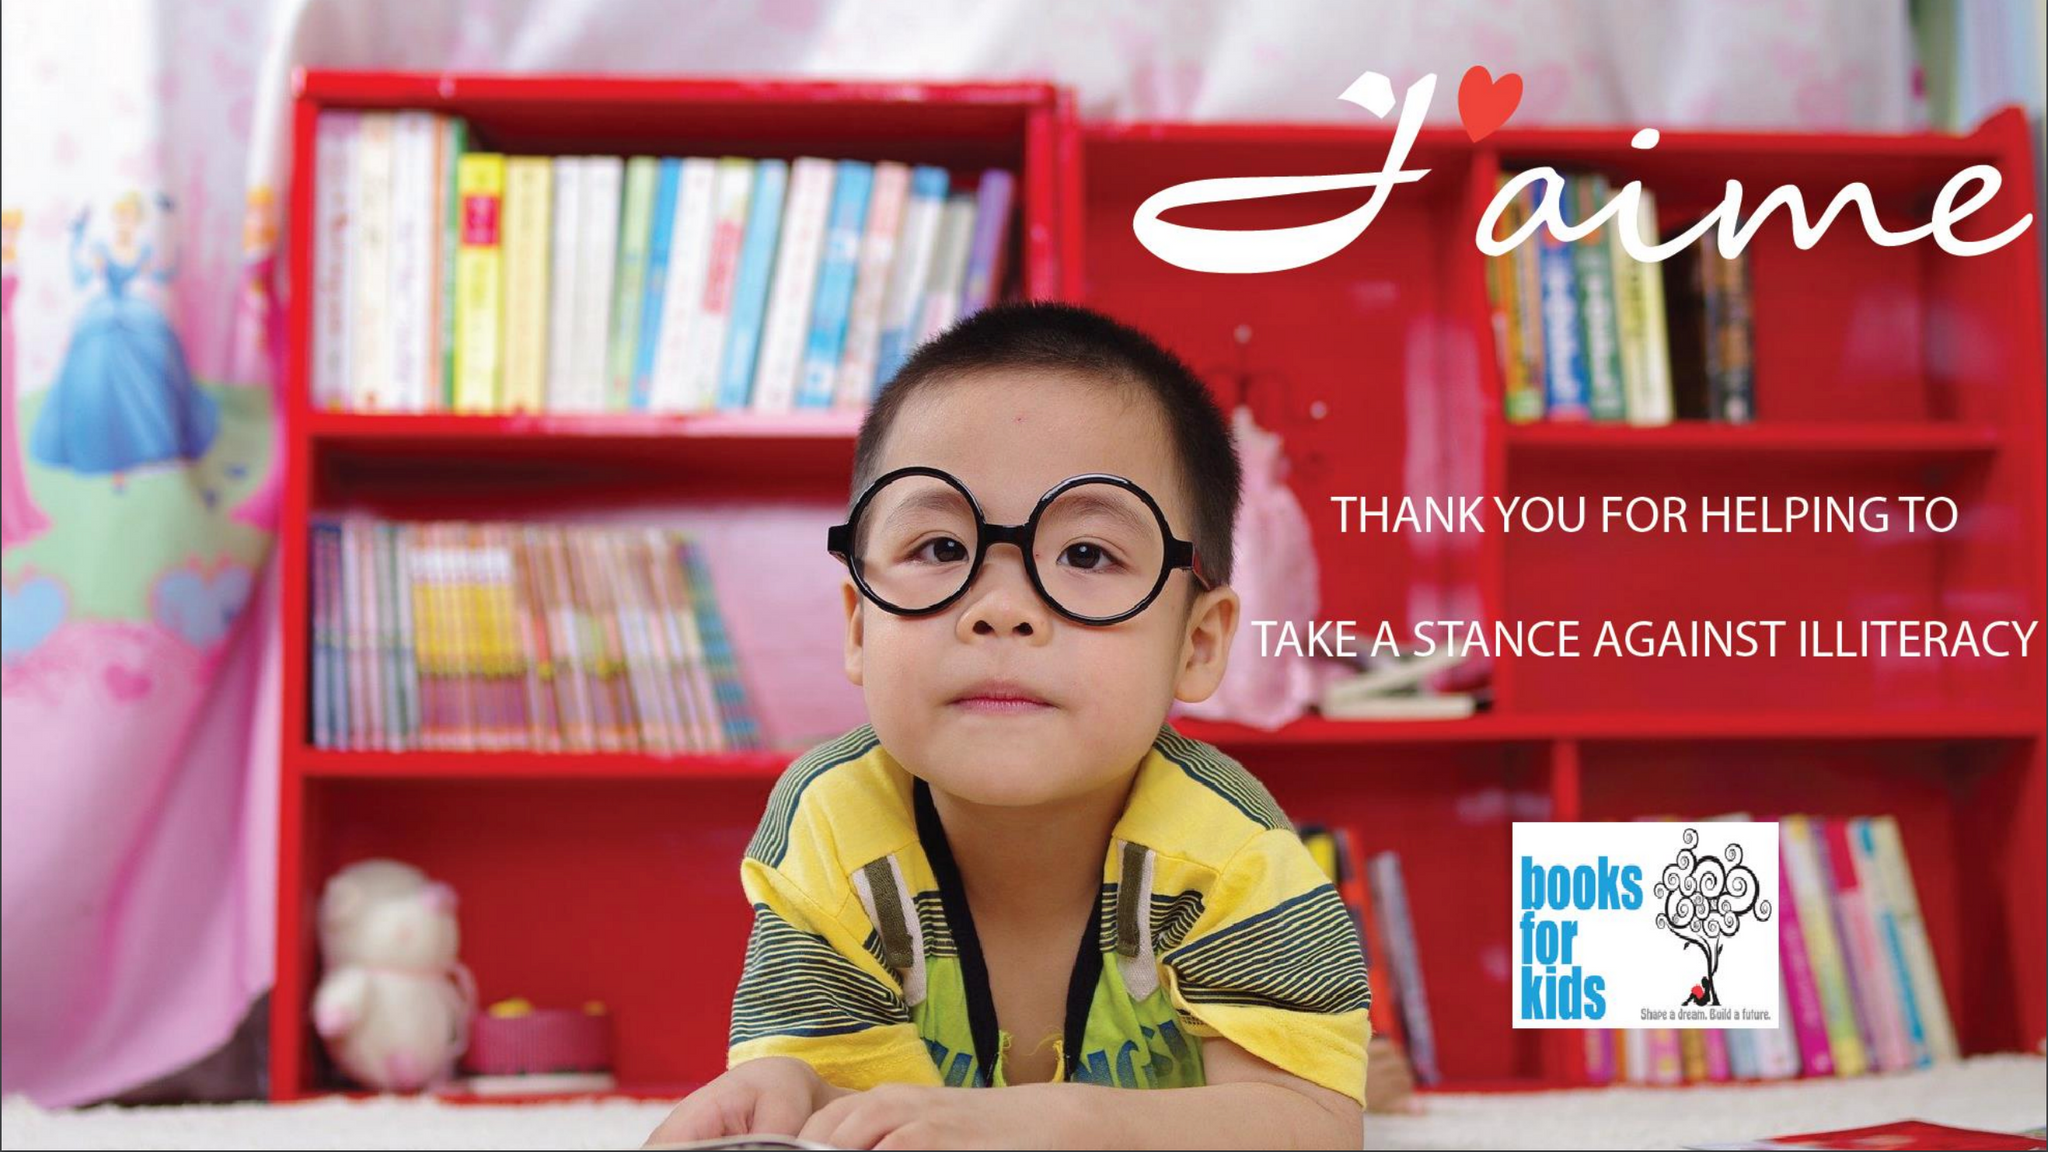 J'aime supports Books For Kids where $1 of each product is donated back to taking a stance against literacy.